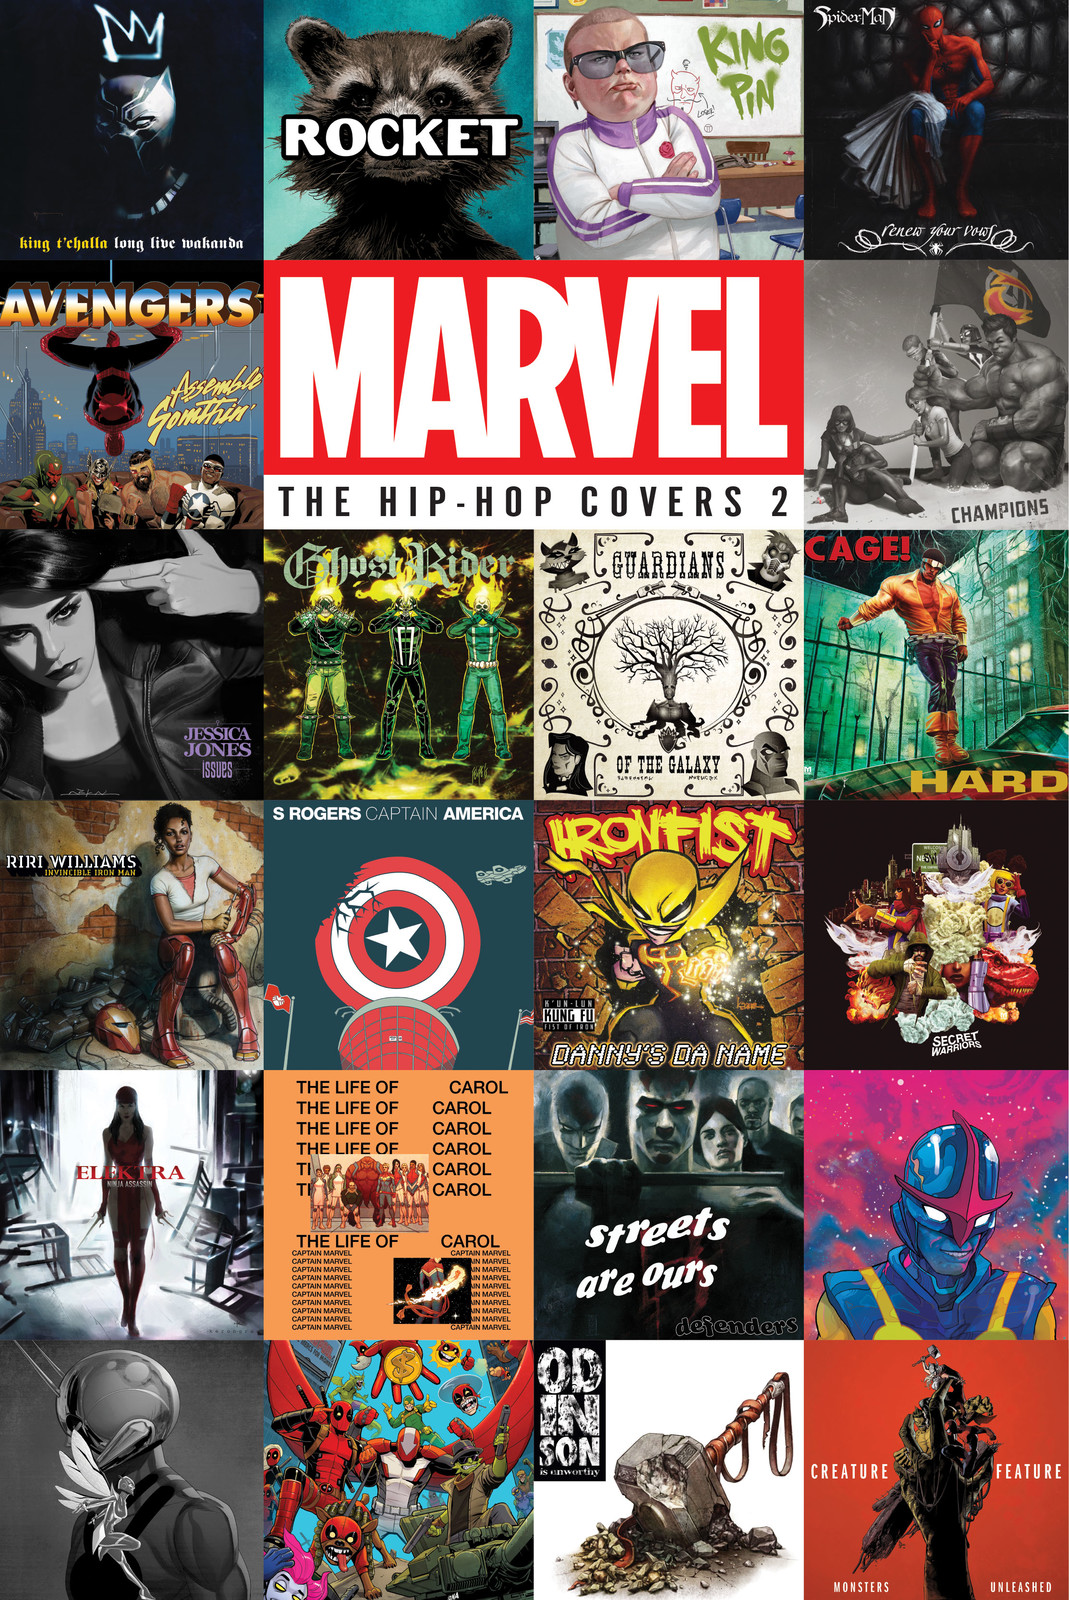 Co-Design and Layout for Marvel The Hip-Hop Covers 2